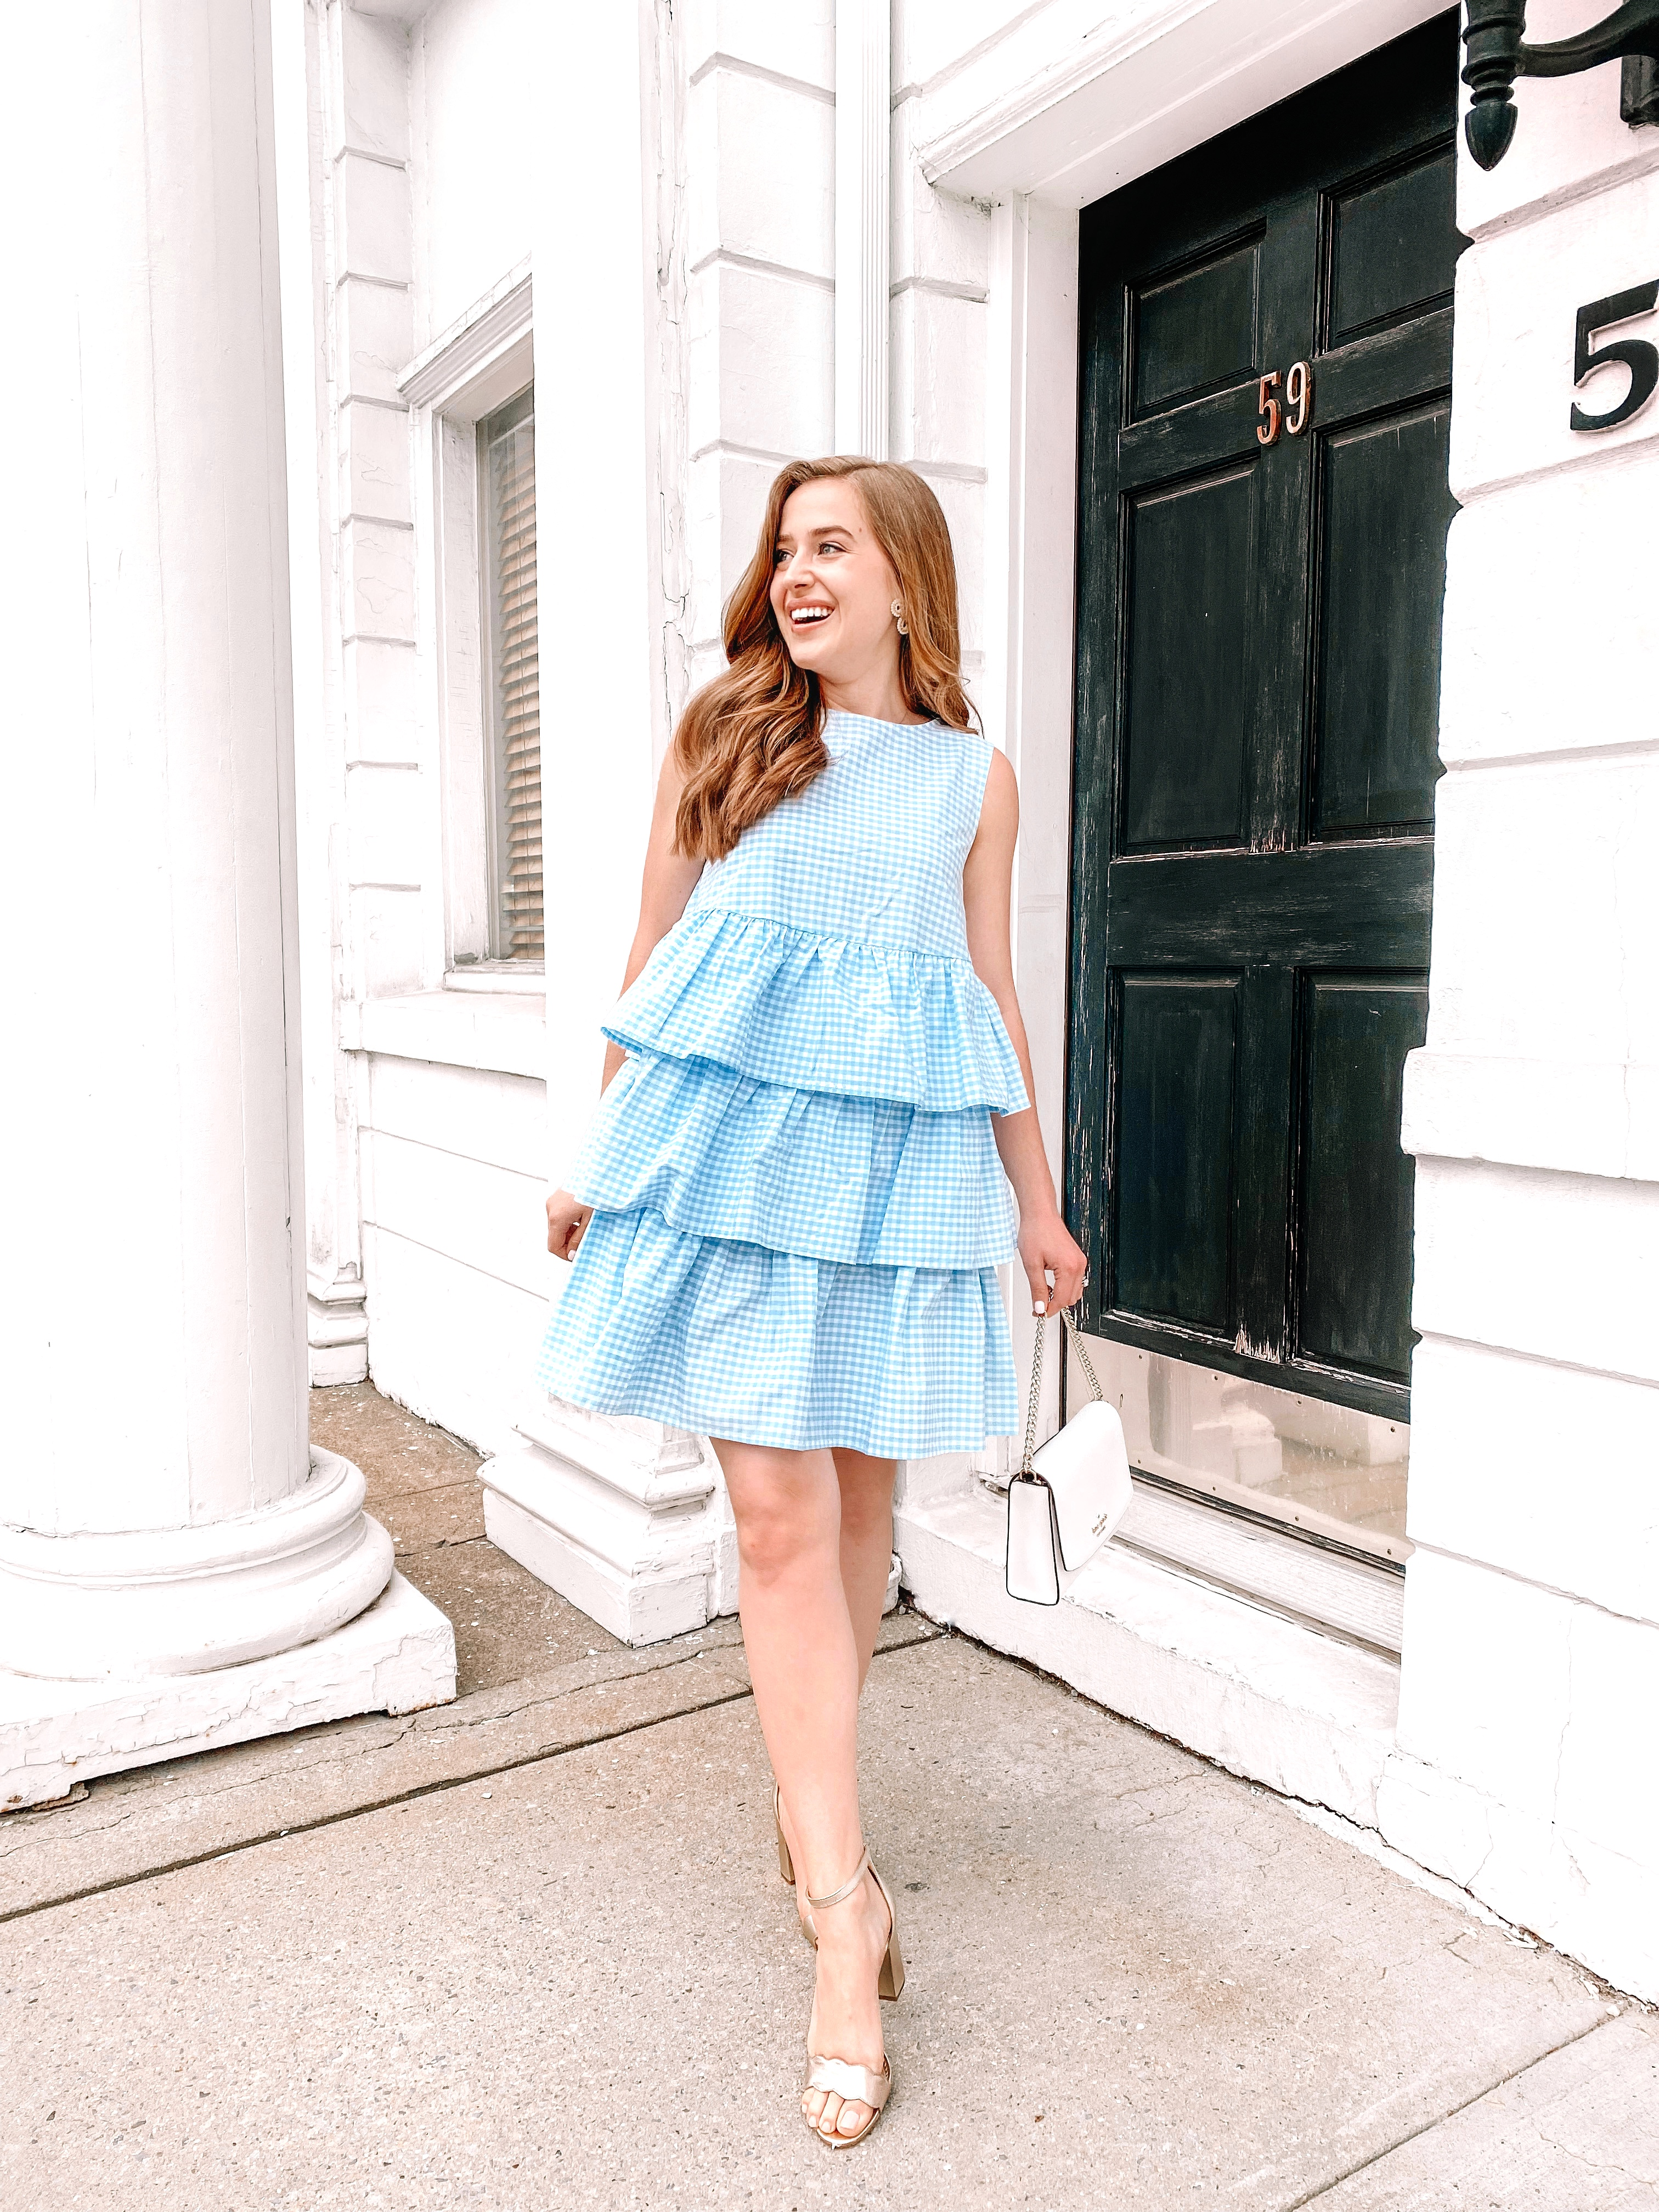 woman smiles in a blue gingham spring dress by a white building and black door